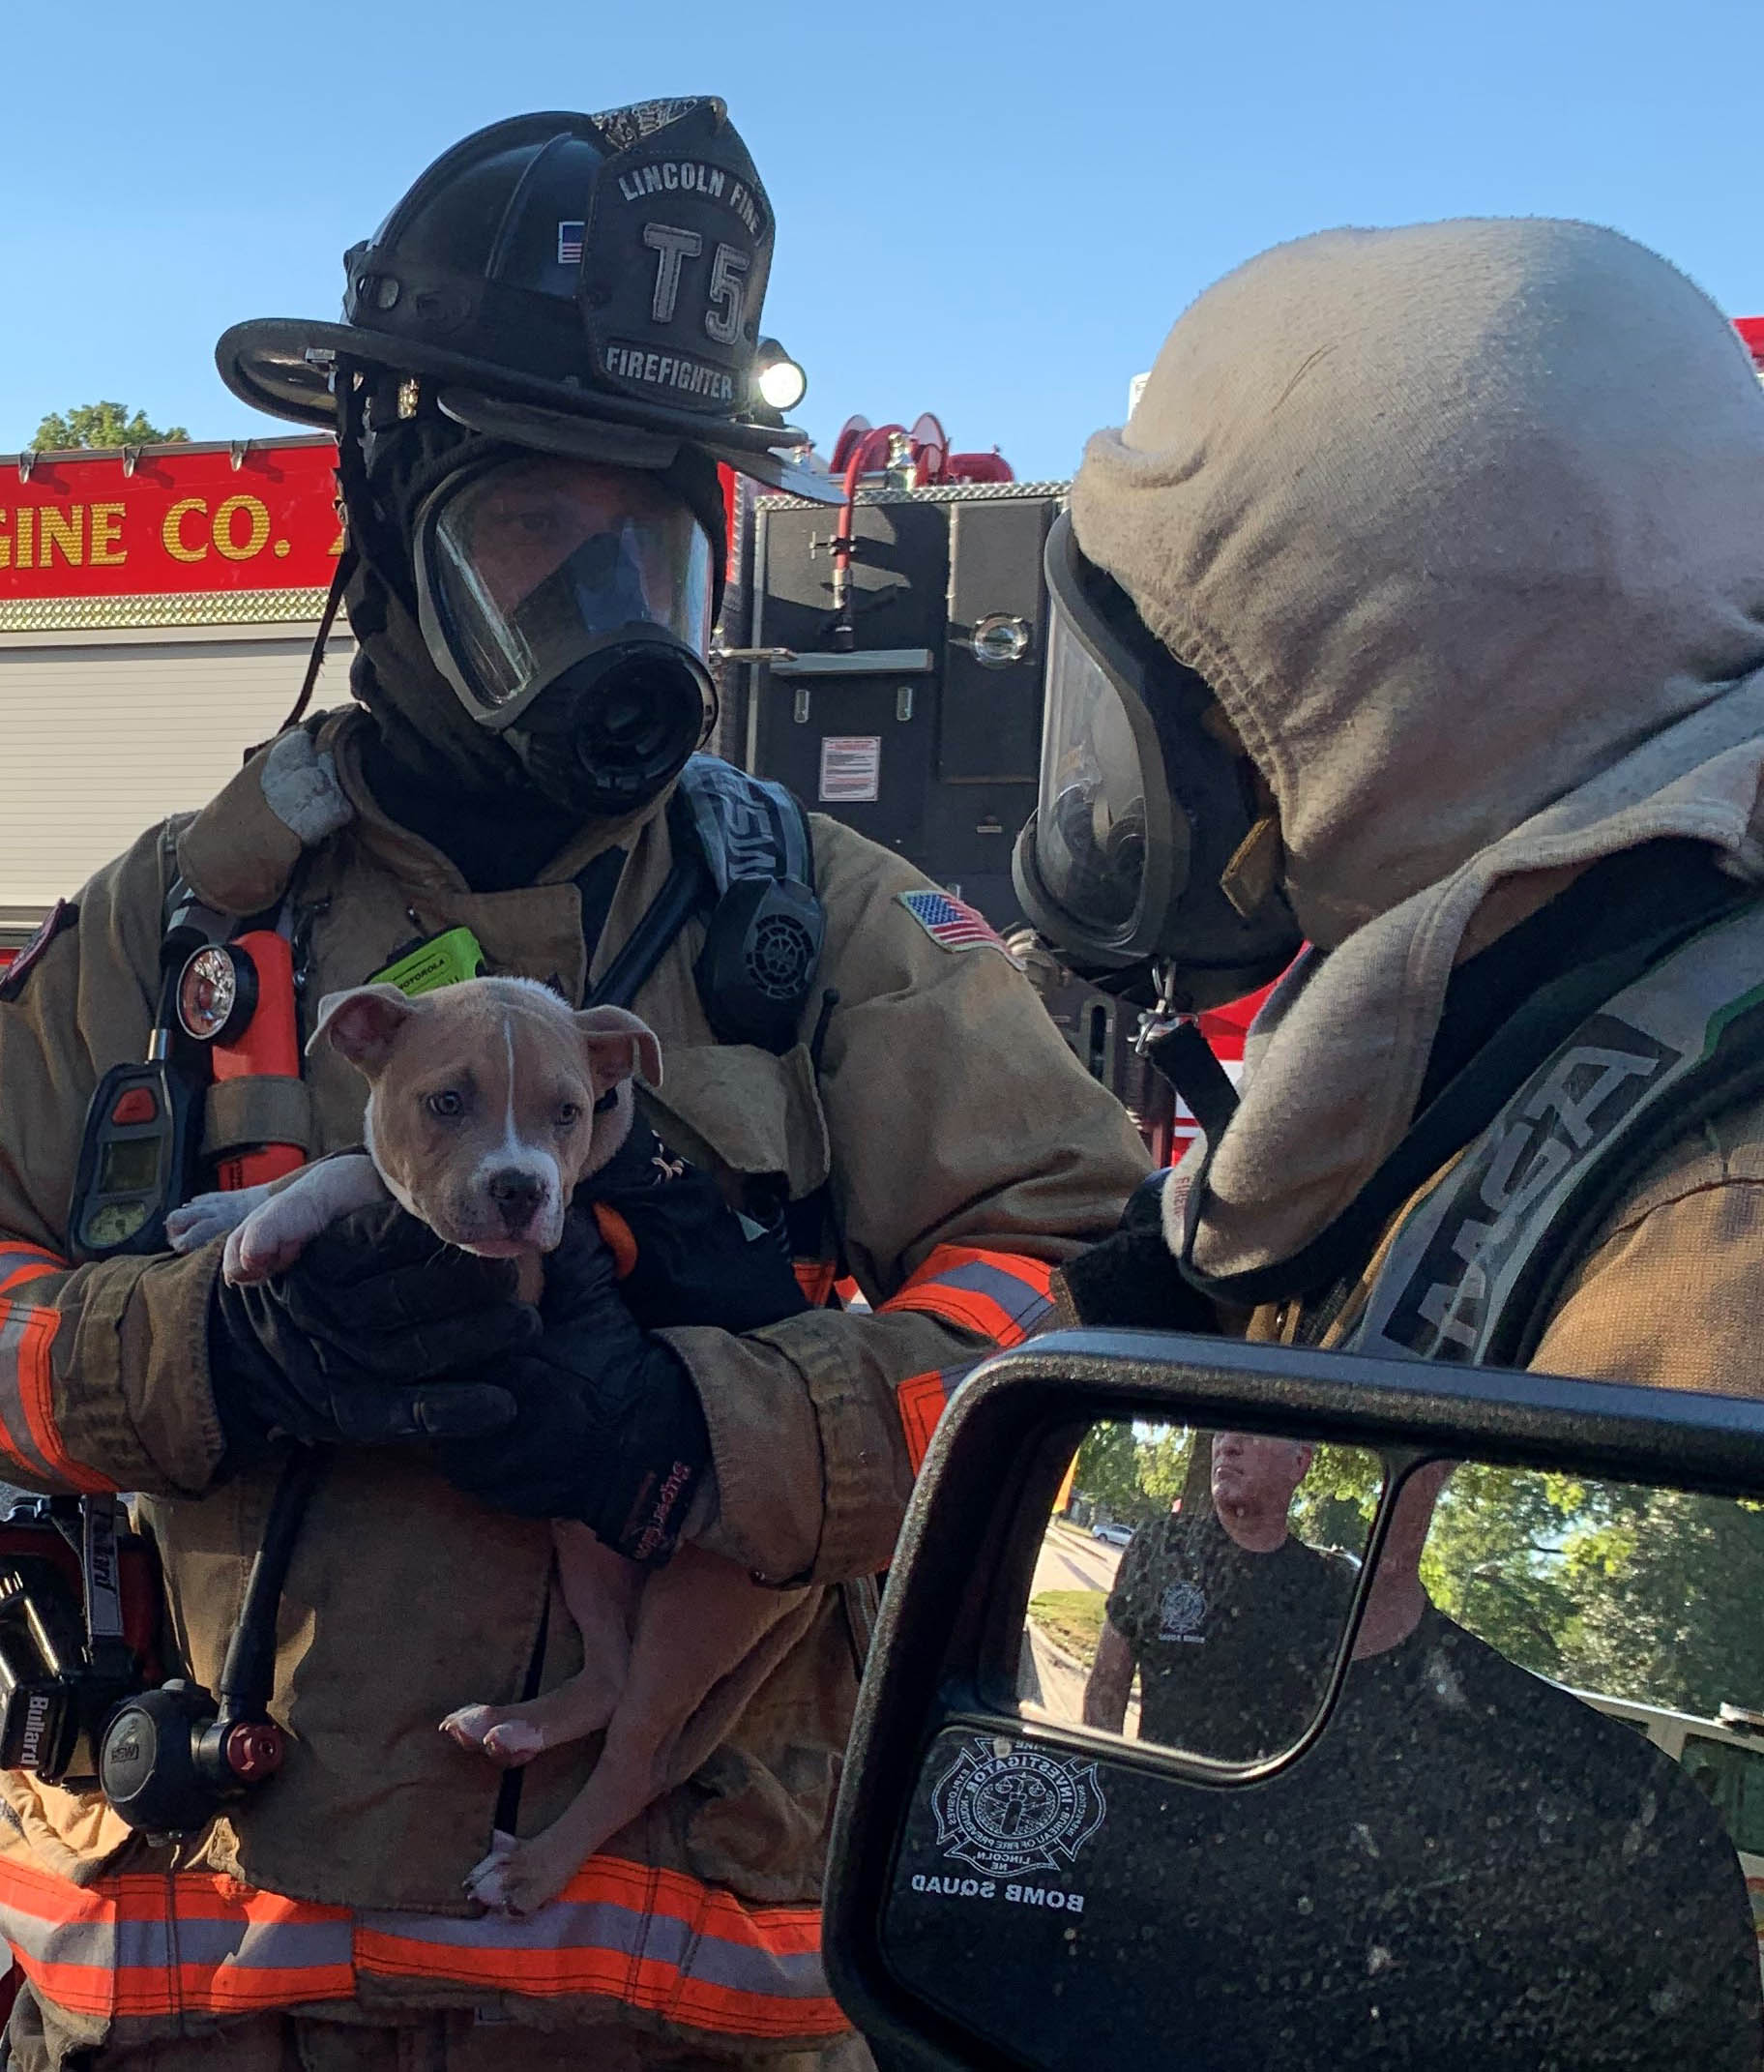 Firefighter from truck 5 holding a puppy who was just rescued from a fire